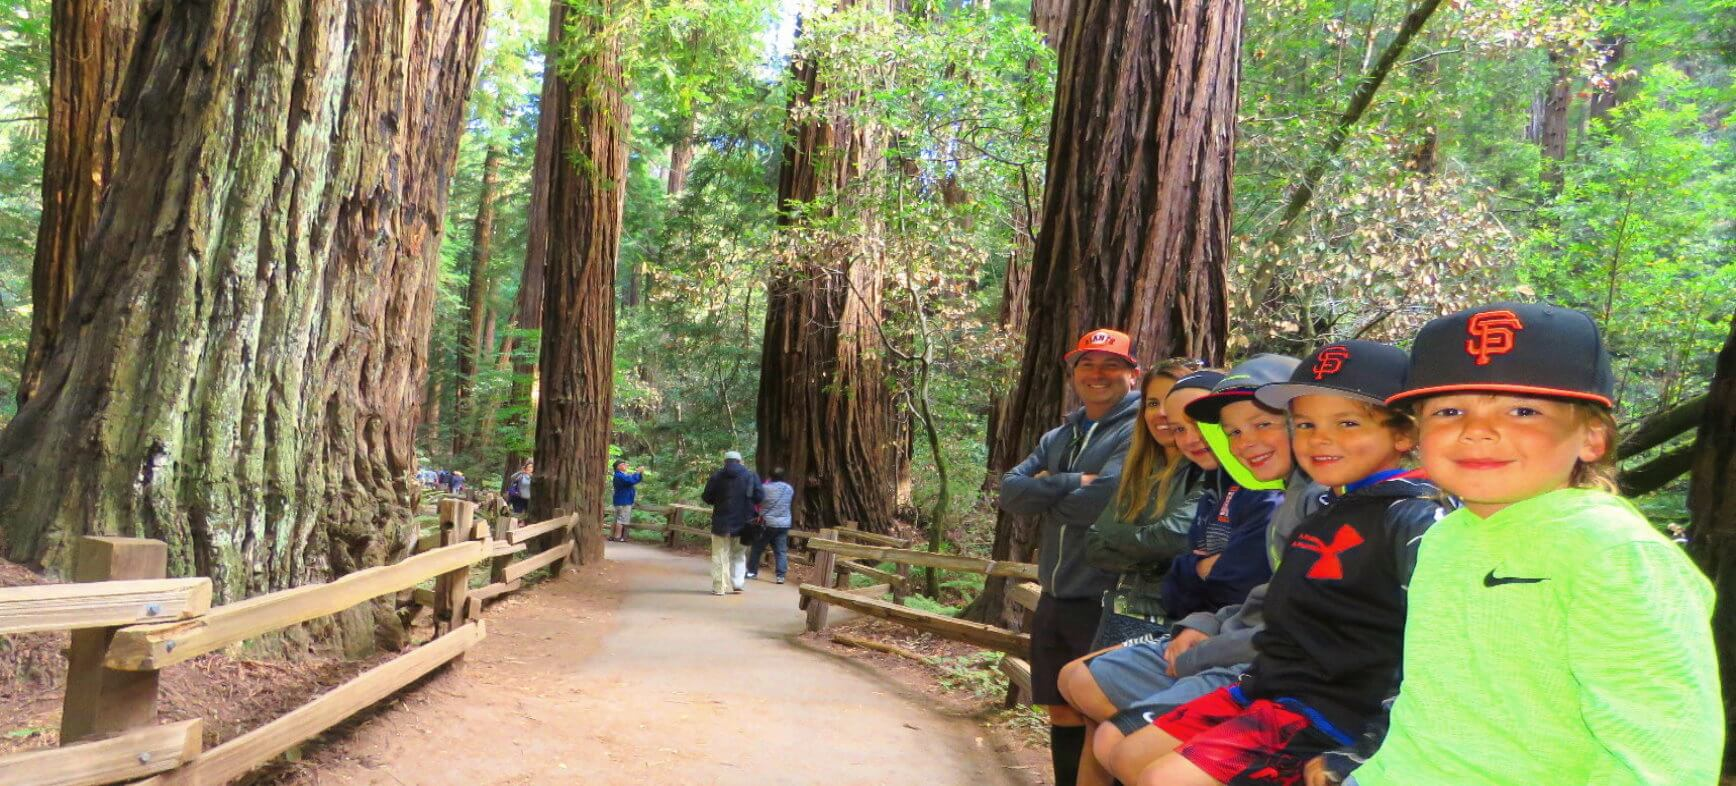 Muir-Woods-Park-Giant-Redwood-Trees